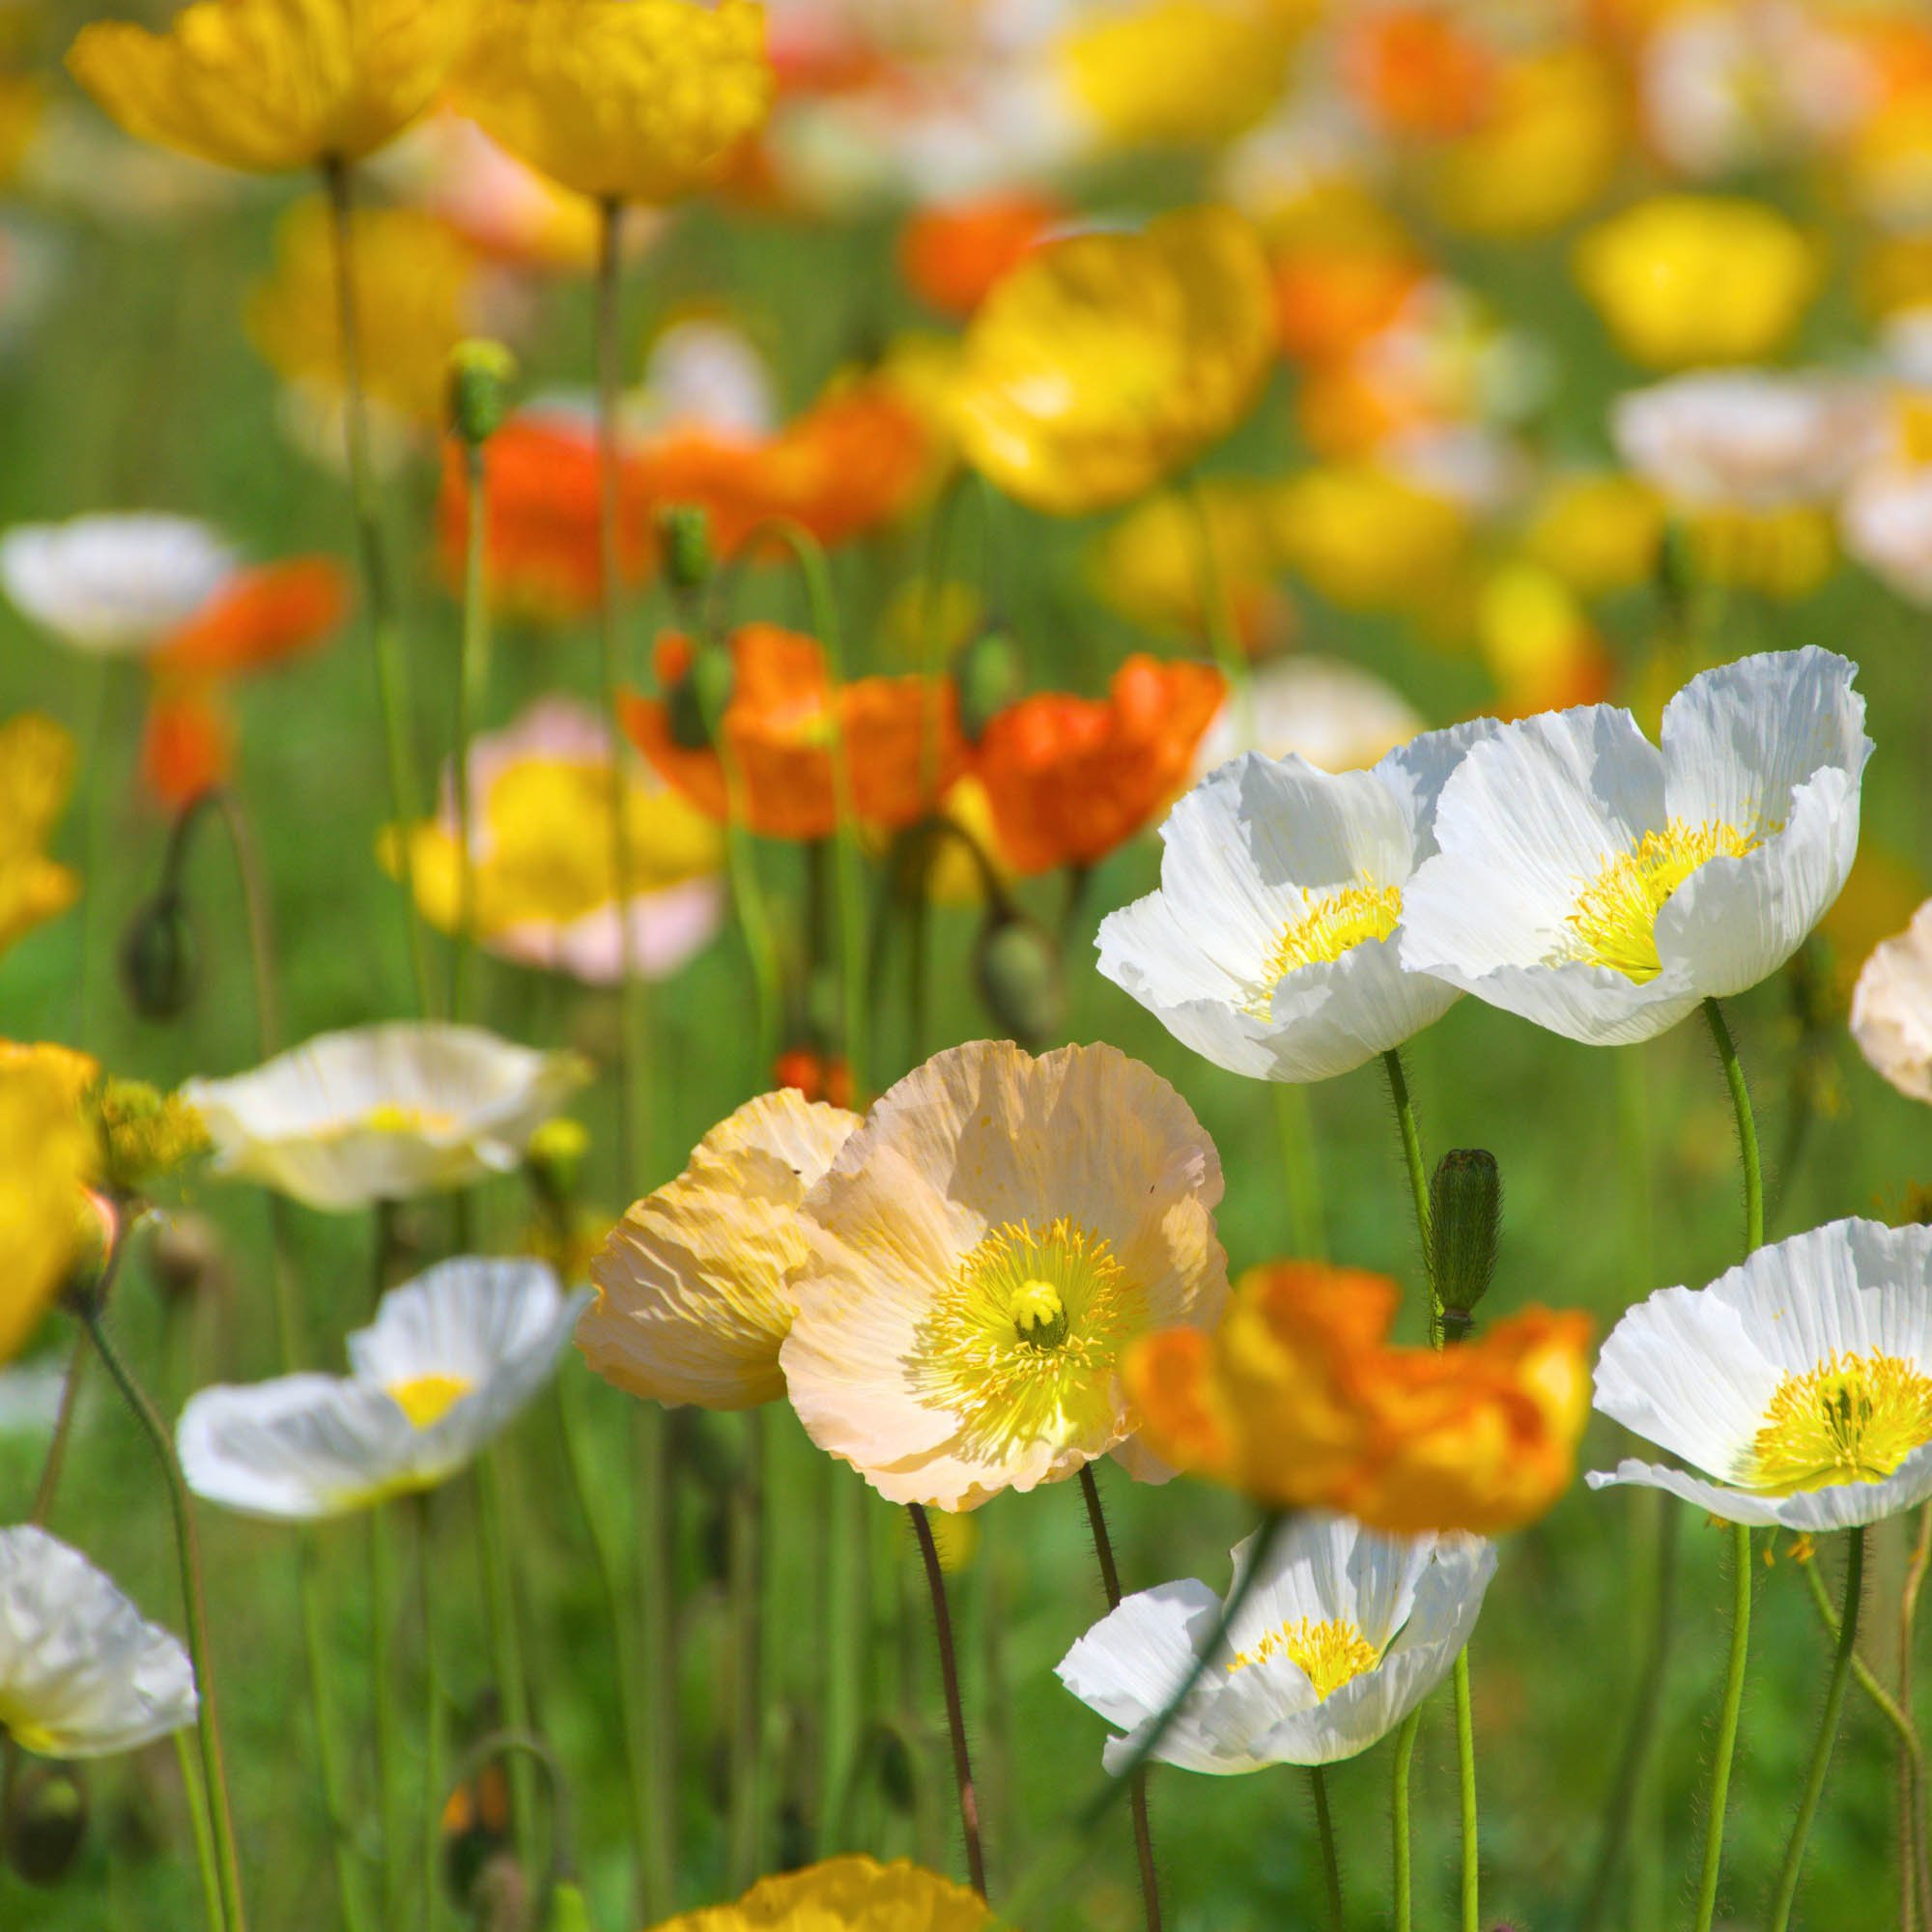 Iceland poppy seeds poppy wildflowers seed iceland poppy papaver nudicaule iceland poppy wildflowers are a wonderful source of exceptionally beautiful colors the poppy flowers nearly glisten in mightylinksfo